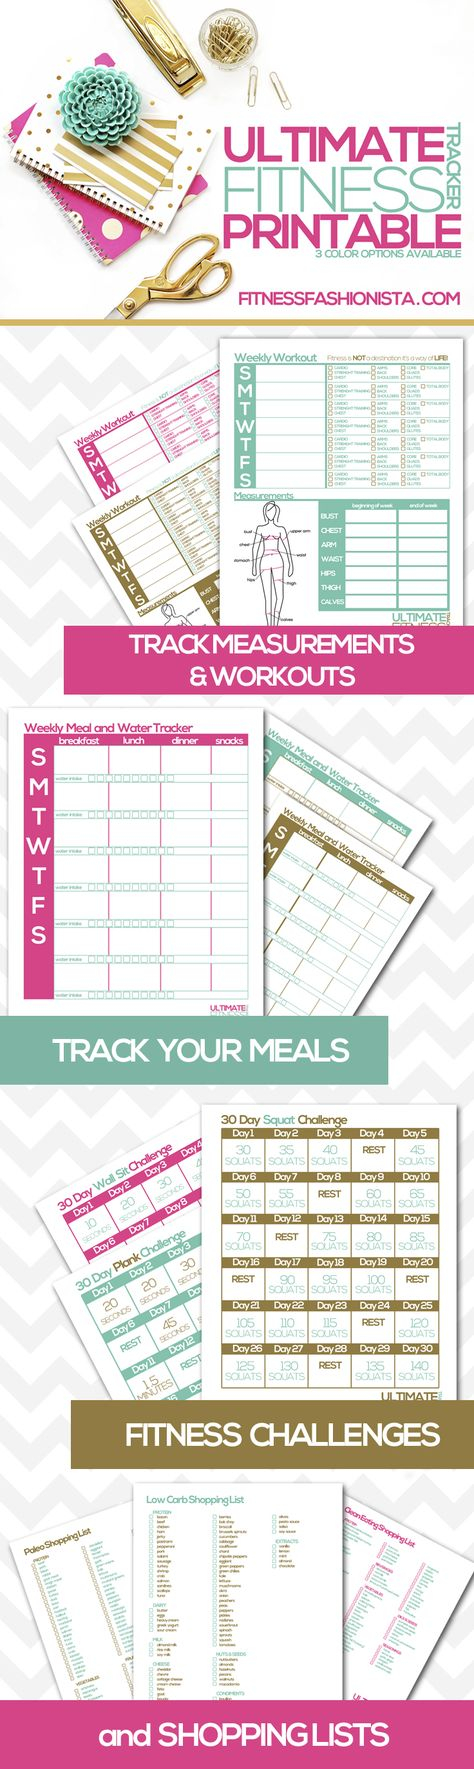 274 Best Filofax Images | Filofax, Planner, Planner Organization For 2021 Advocare 24 Day Challege Meal Guide